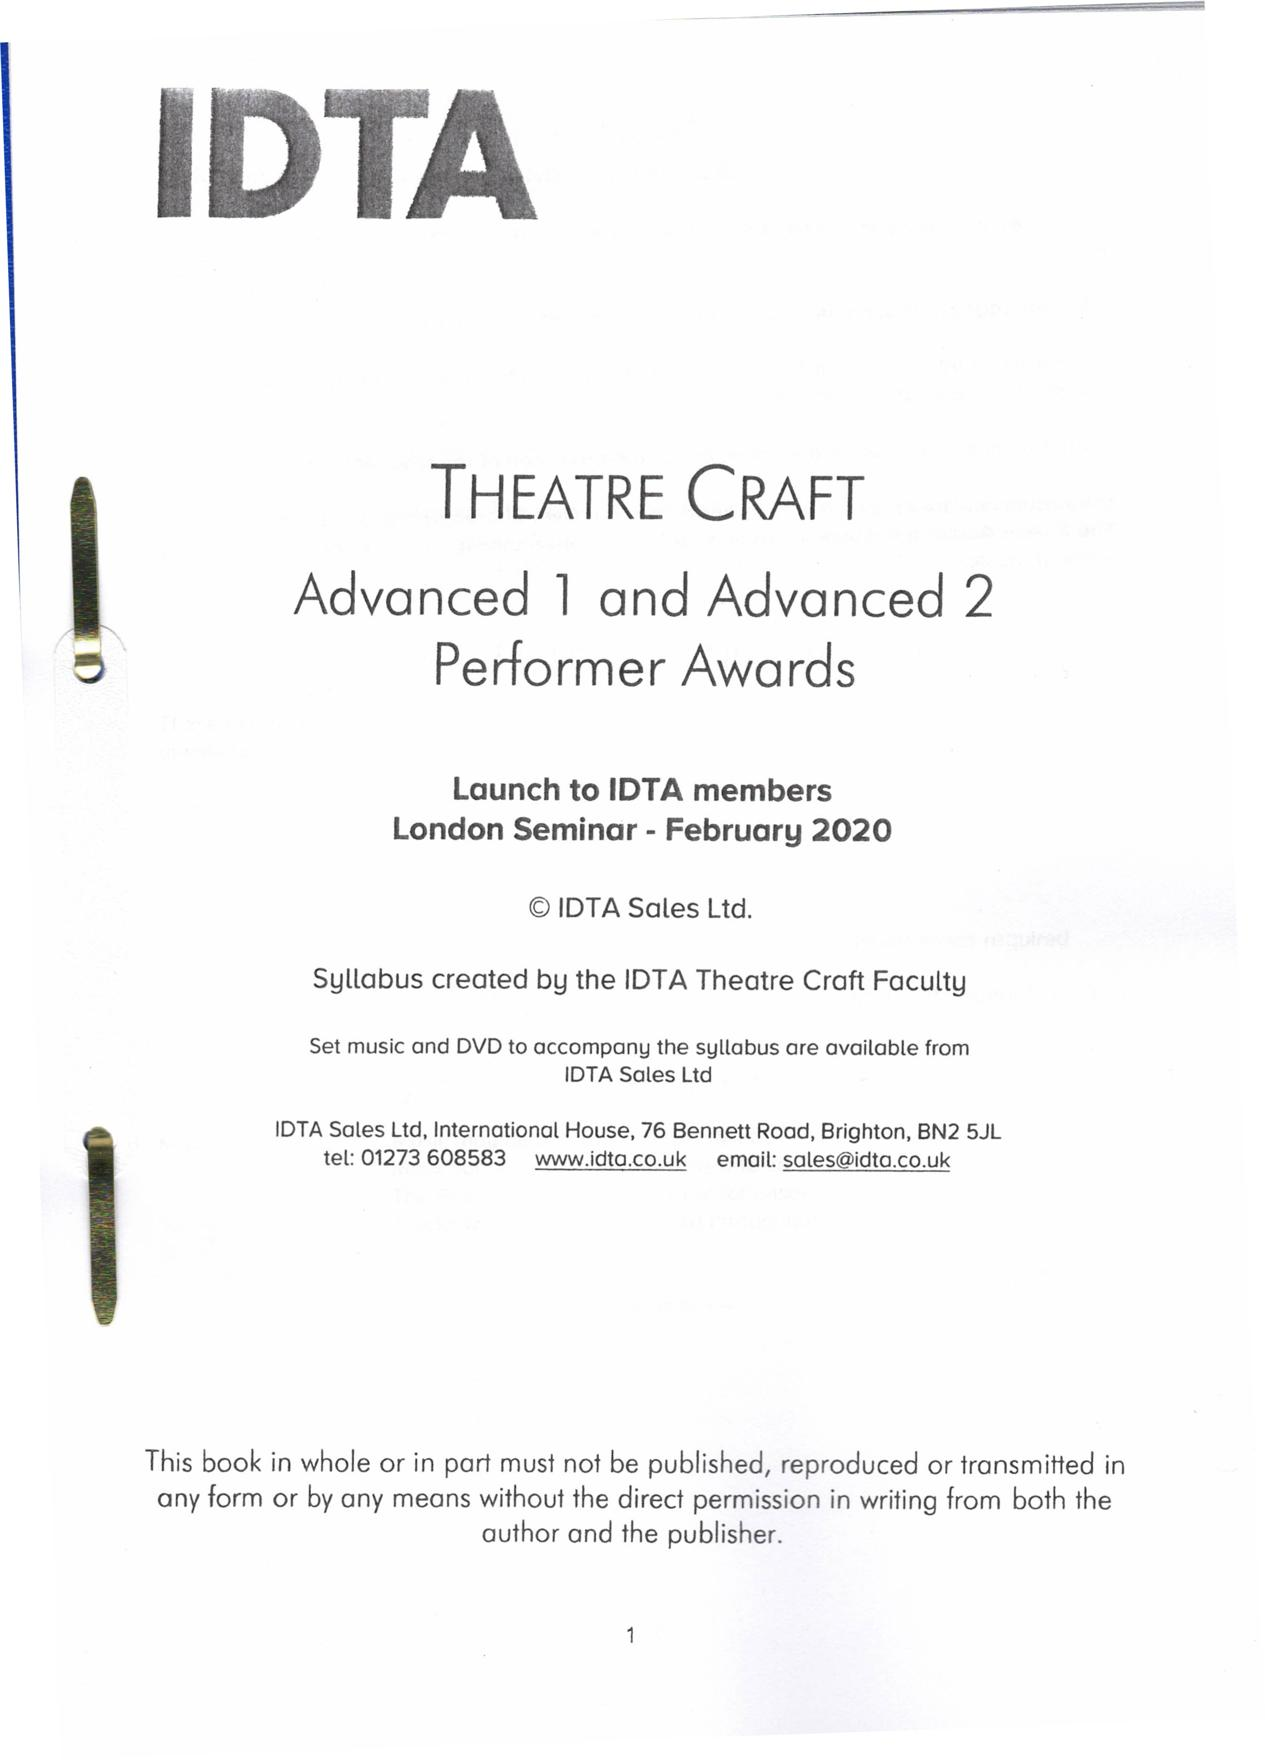 THEATRE CRAFT ADVANCED 1 & 2 PERFORMERS AWARDS